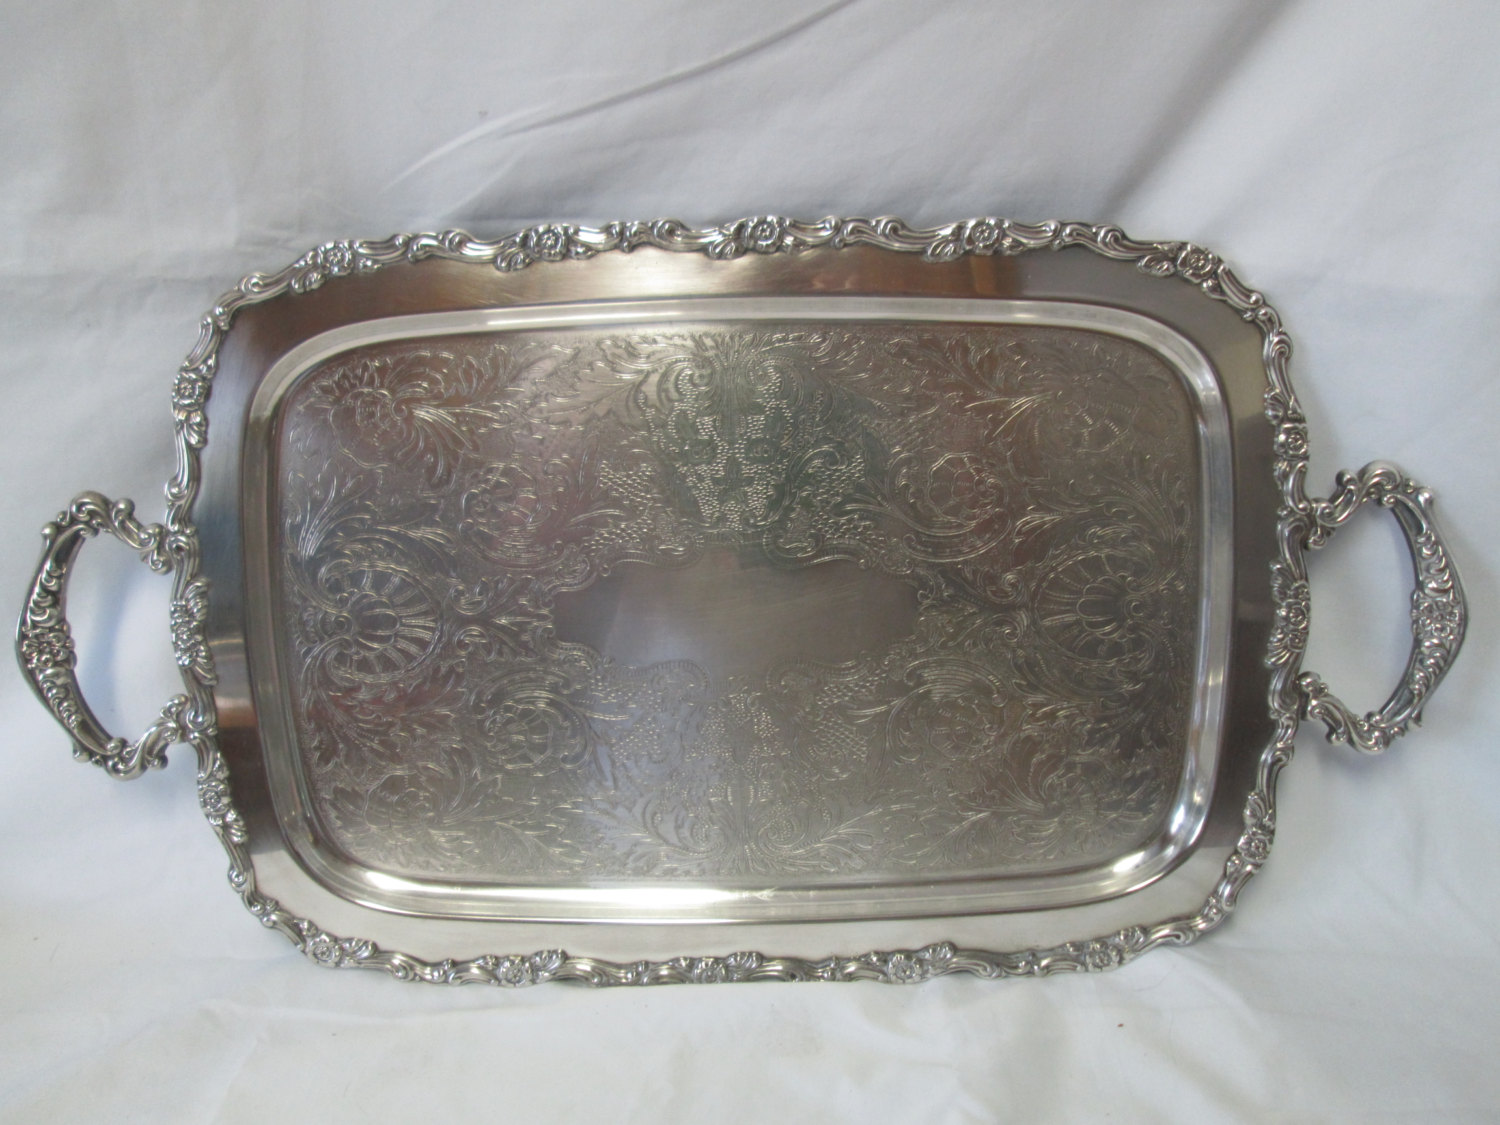 Beautiful Large Rectangular Serving Tray Silver Plate Handled Tray With Ornate Handles And Edges Scrolls And Flowers Footed Tray Carol S True Vintage And Antiques